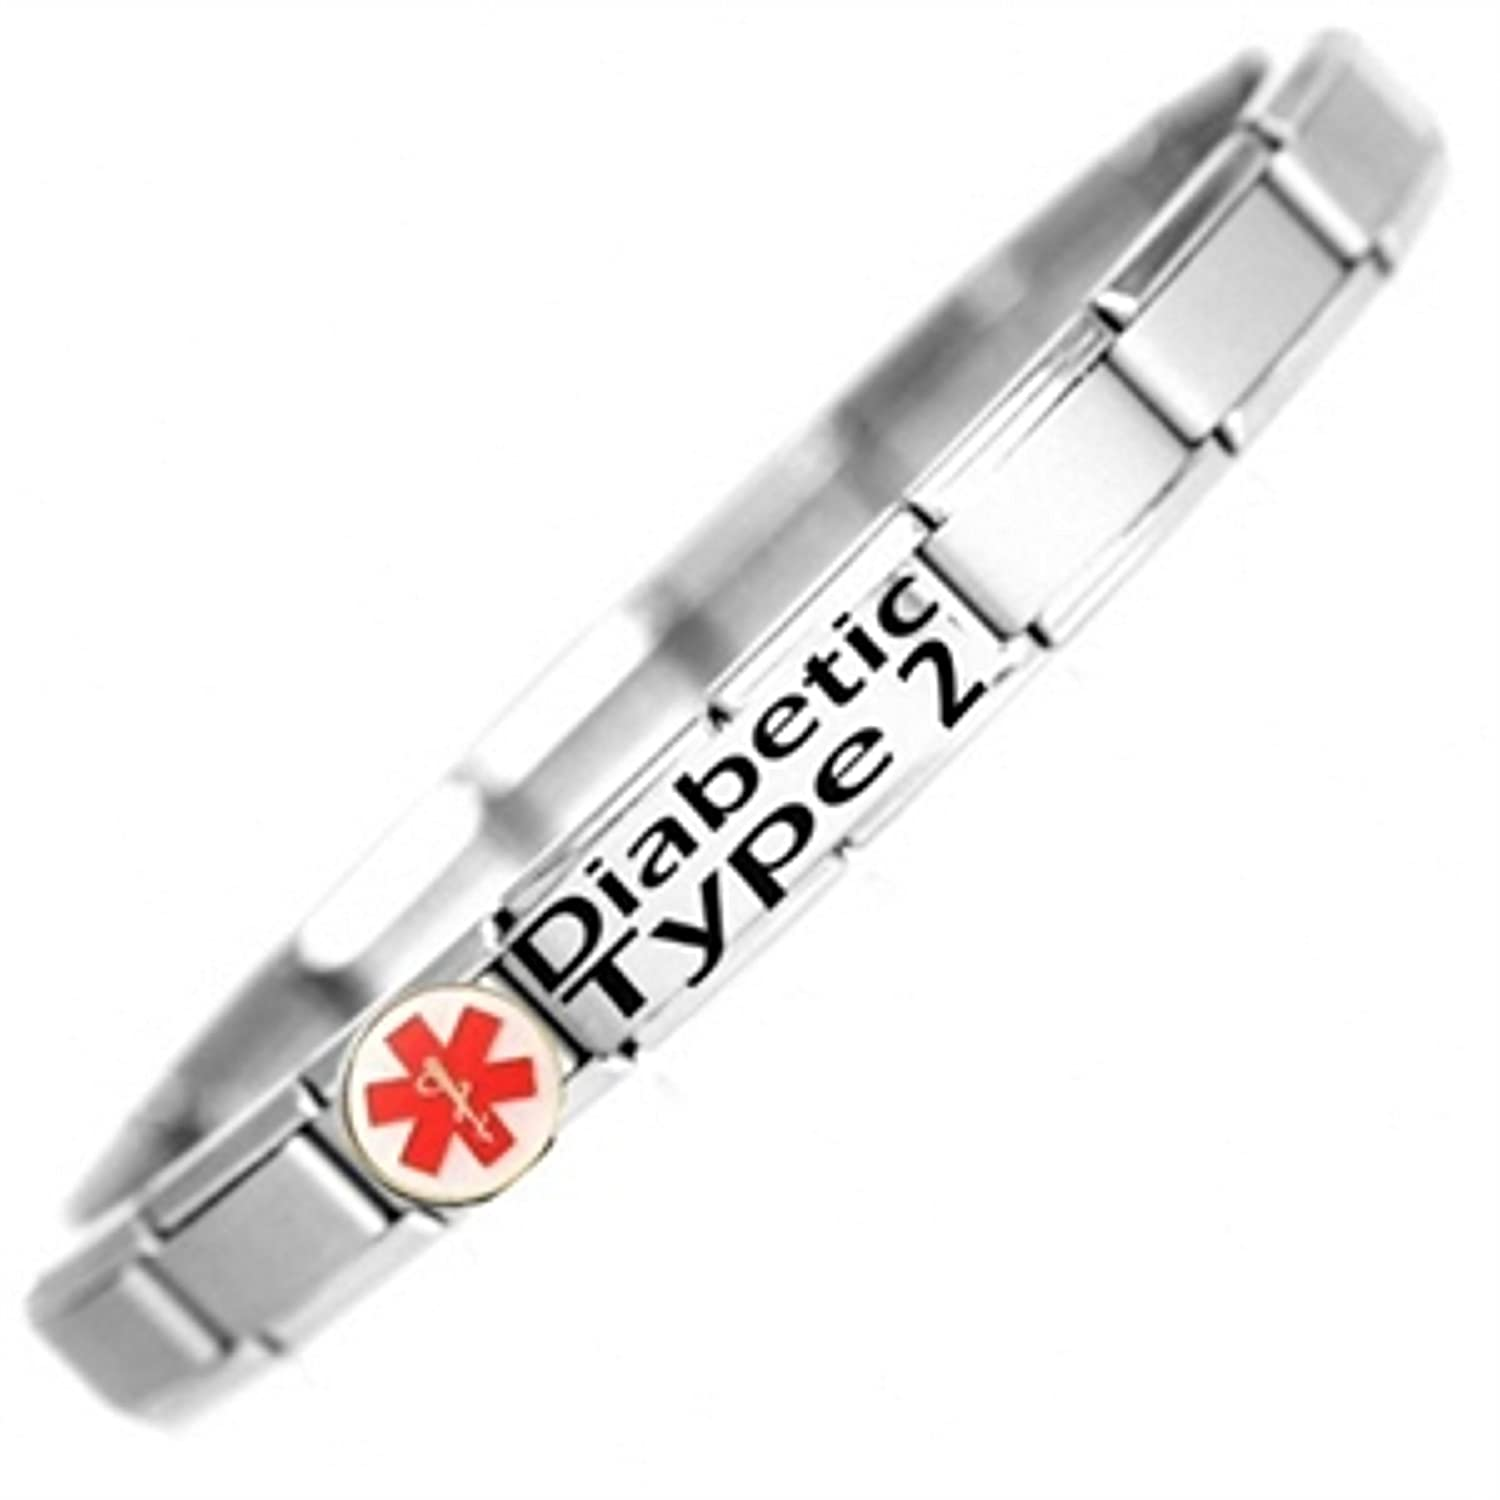 jewelry diabetic bracelet diabetes bracelets alert med collections type necklaces insulin dependent wear